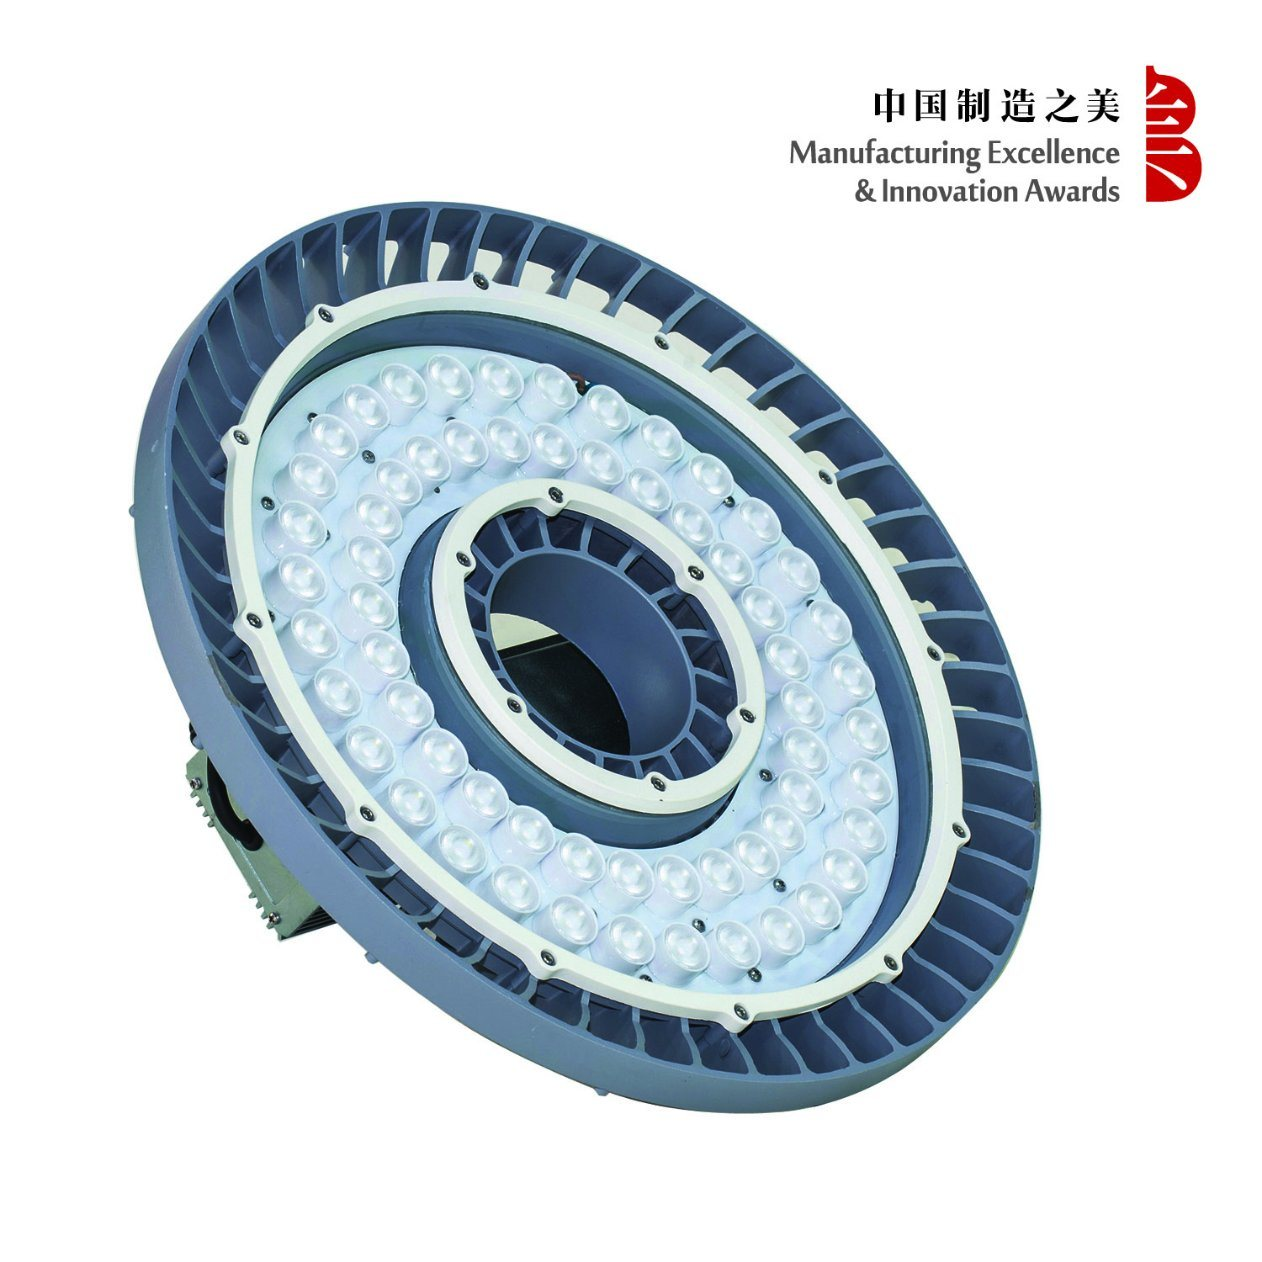 200W Outdoor High Bay/Flood Light (BFZ 220/200 55 Y)